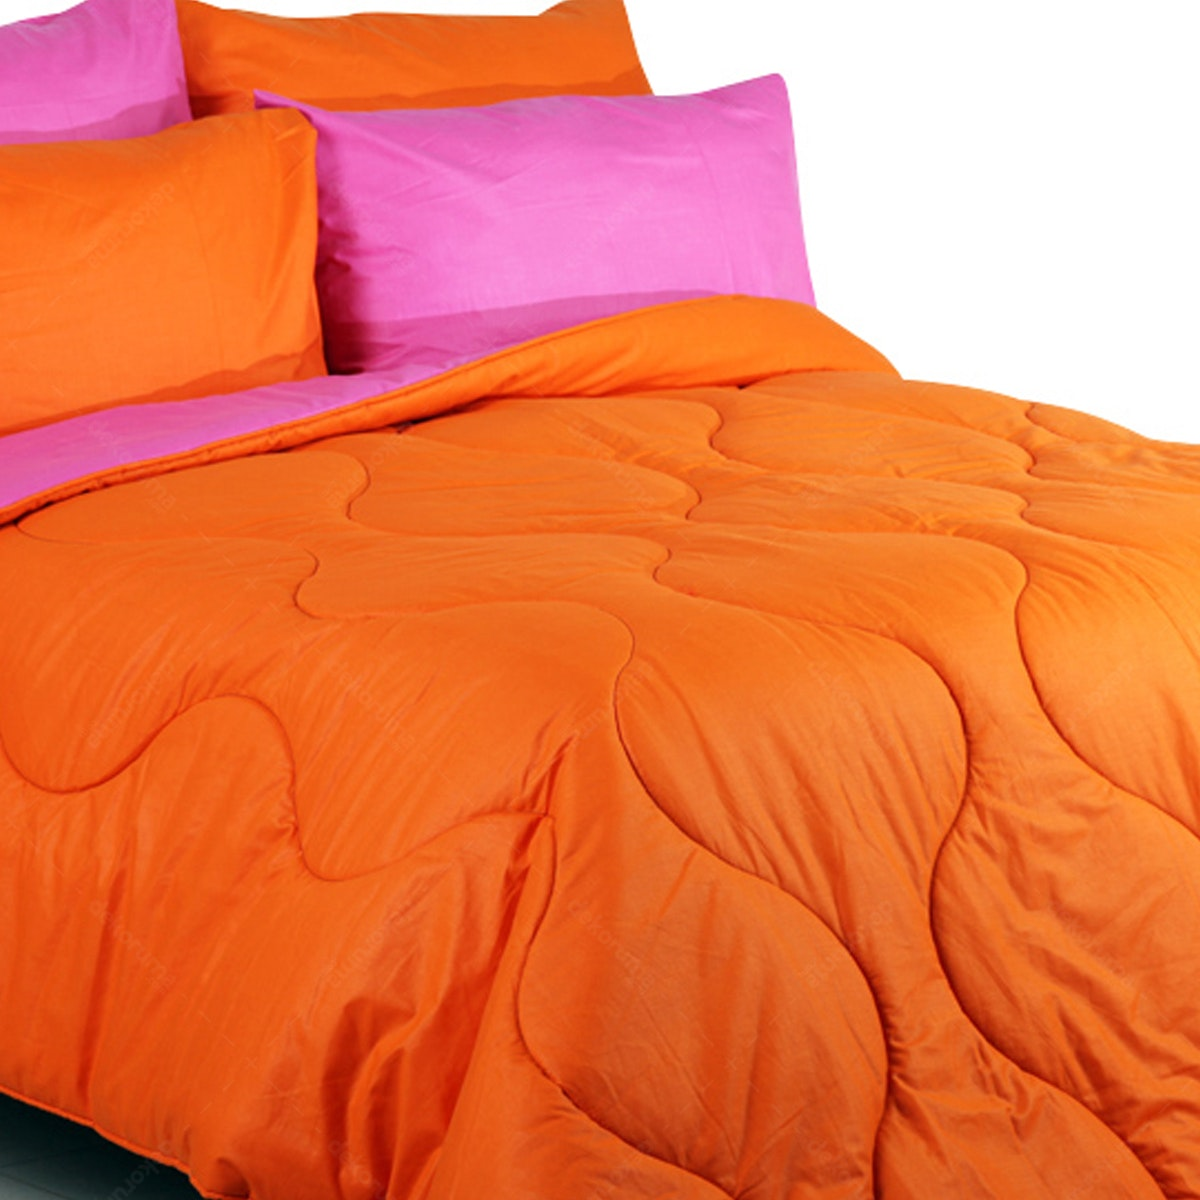 Sierra Sprei Polos Orange Mix Fanta 160x200